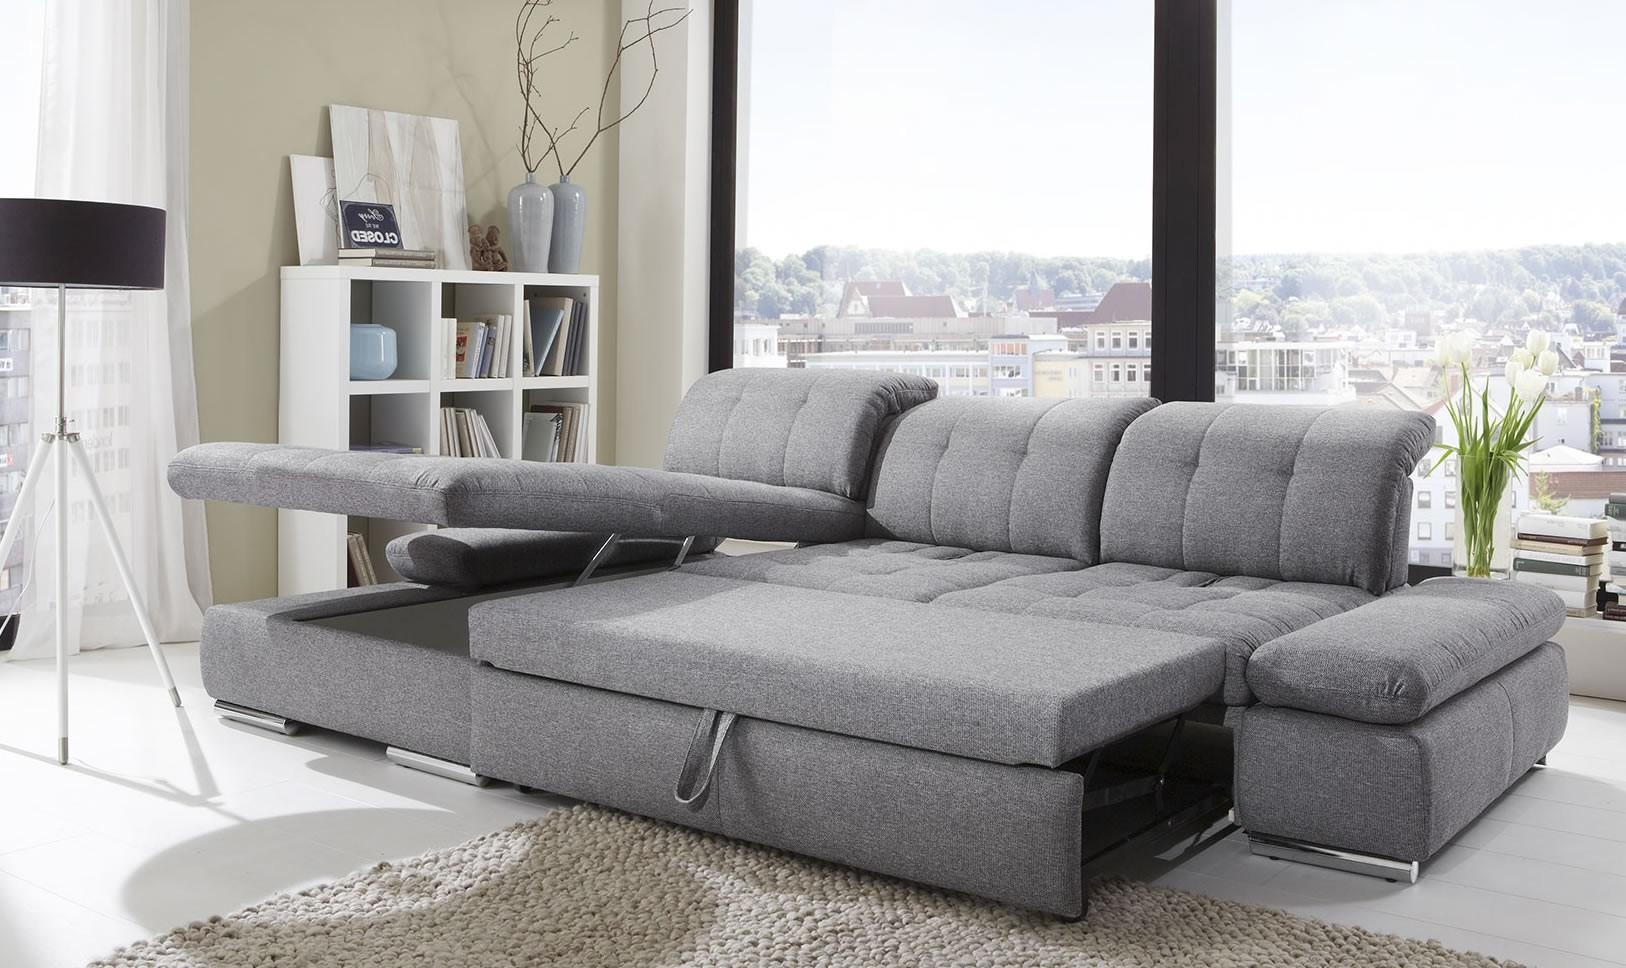 Alpine Sectional Sleeper Sofa, Left Arm Chaise Facing, Black Regarding Sectional Sleeper Sofas With Chaise (View 16 of 20)